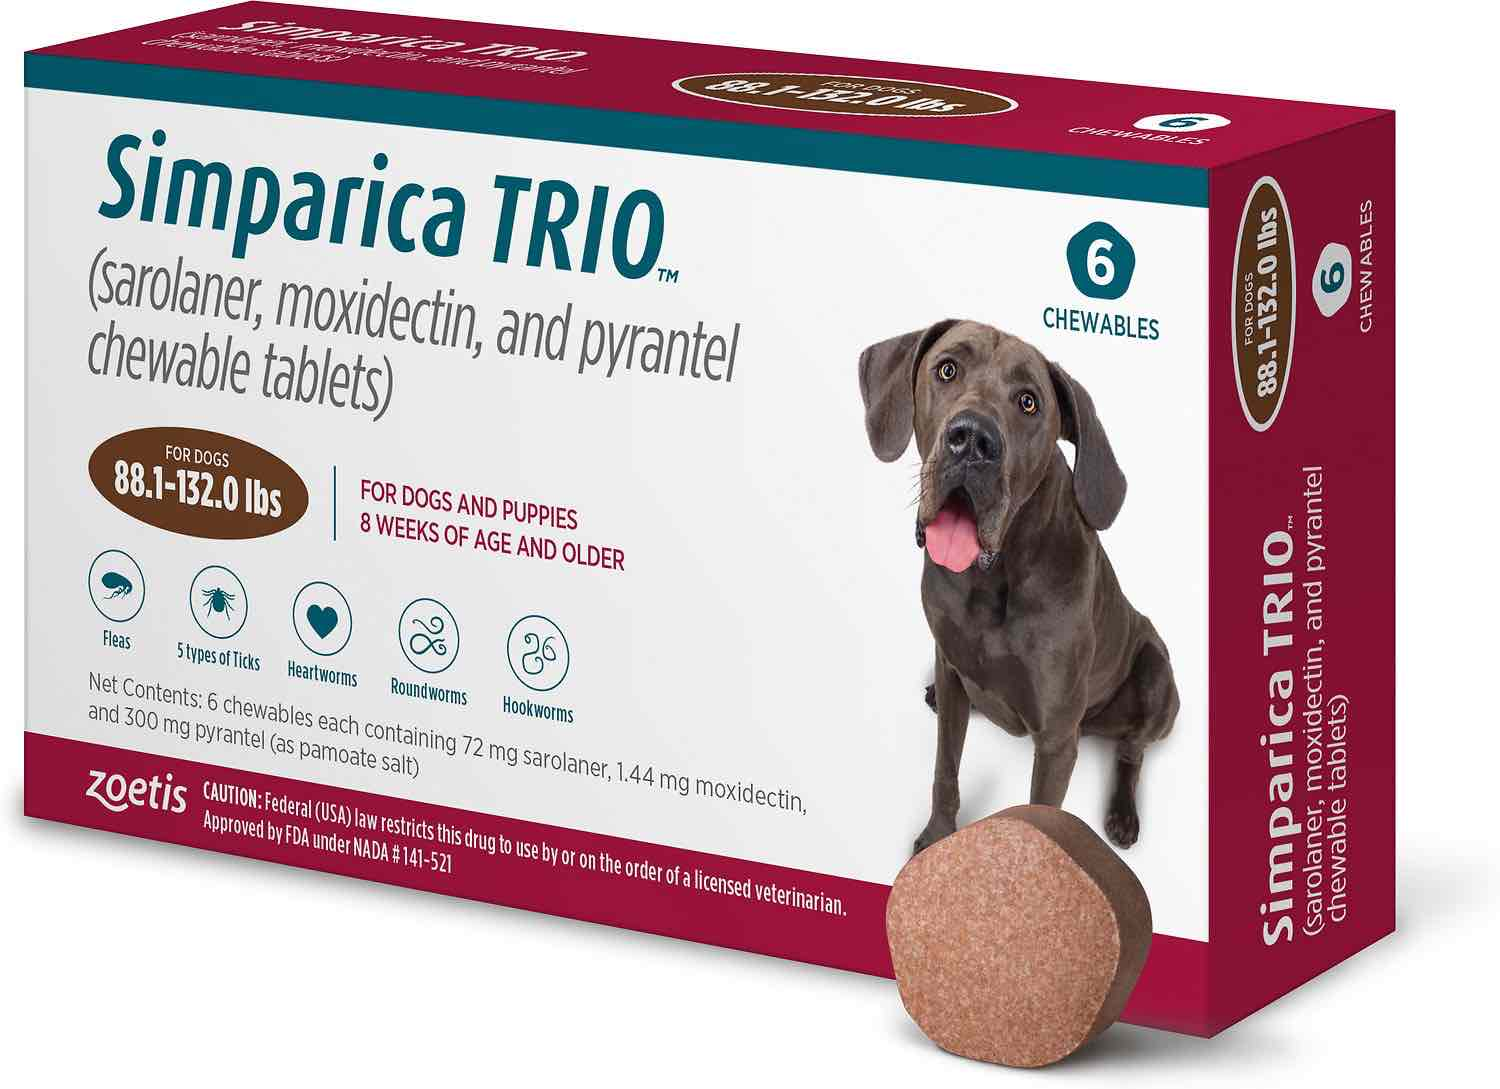 Simparica Trio 6 chewables for dogs 88.1-132 lbs (Brown) 1